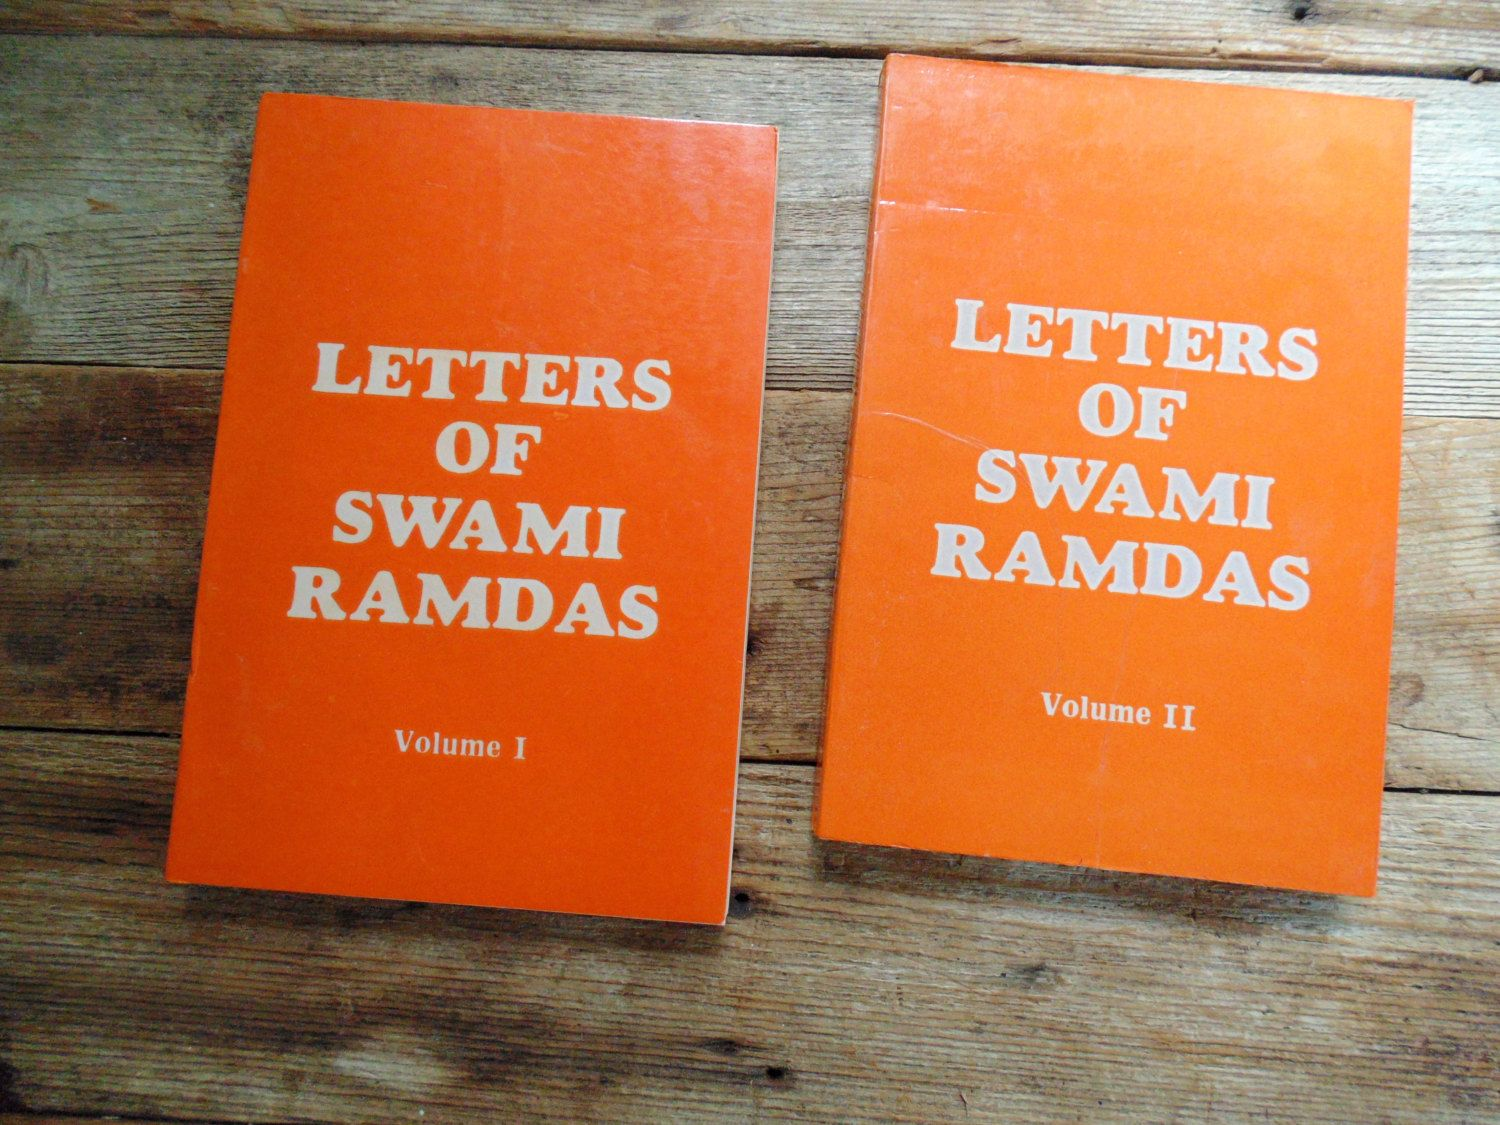 Letters Of Swami Ramdas Lot Of 2 Books 1980s Reprints By Ourvintagehouse On Etsy Letters Etsy Books